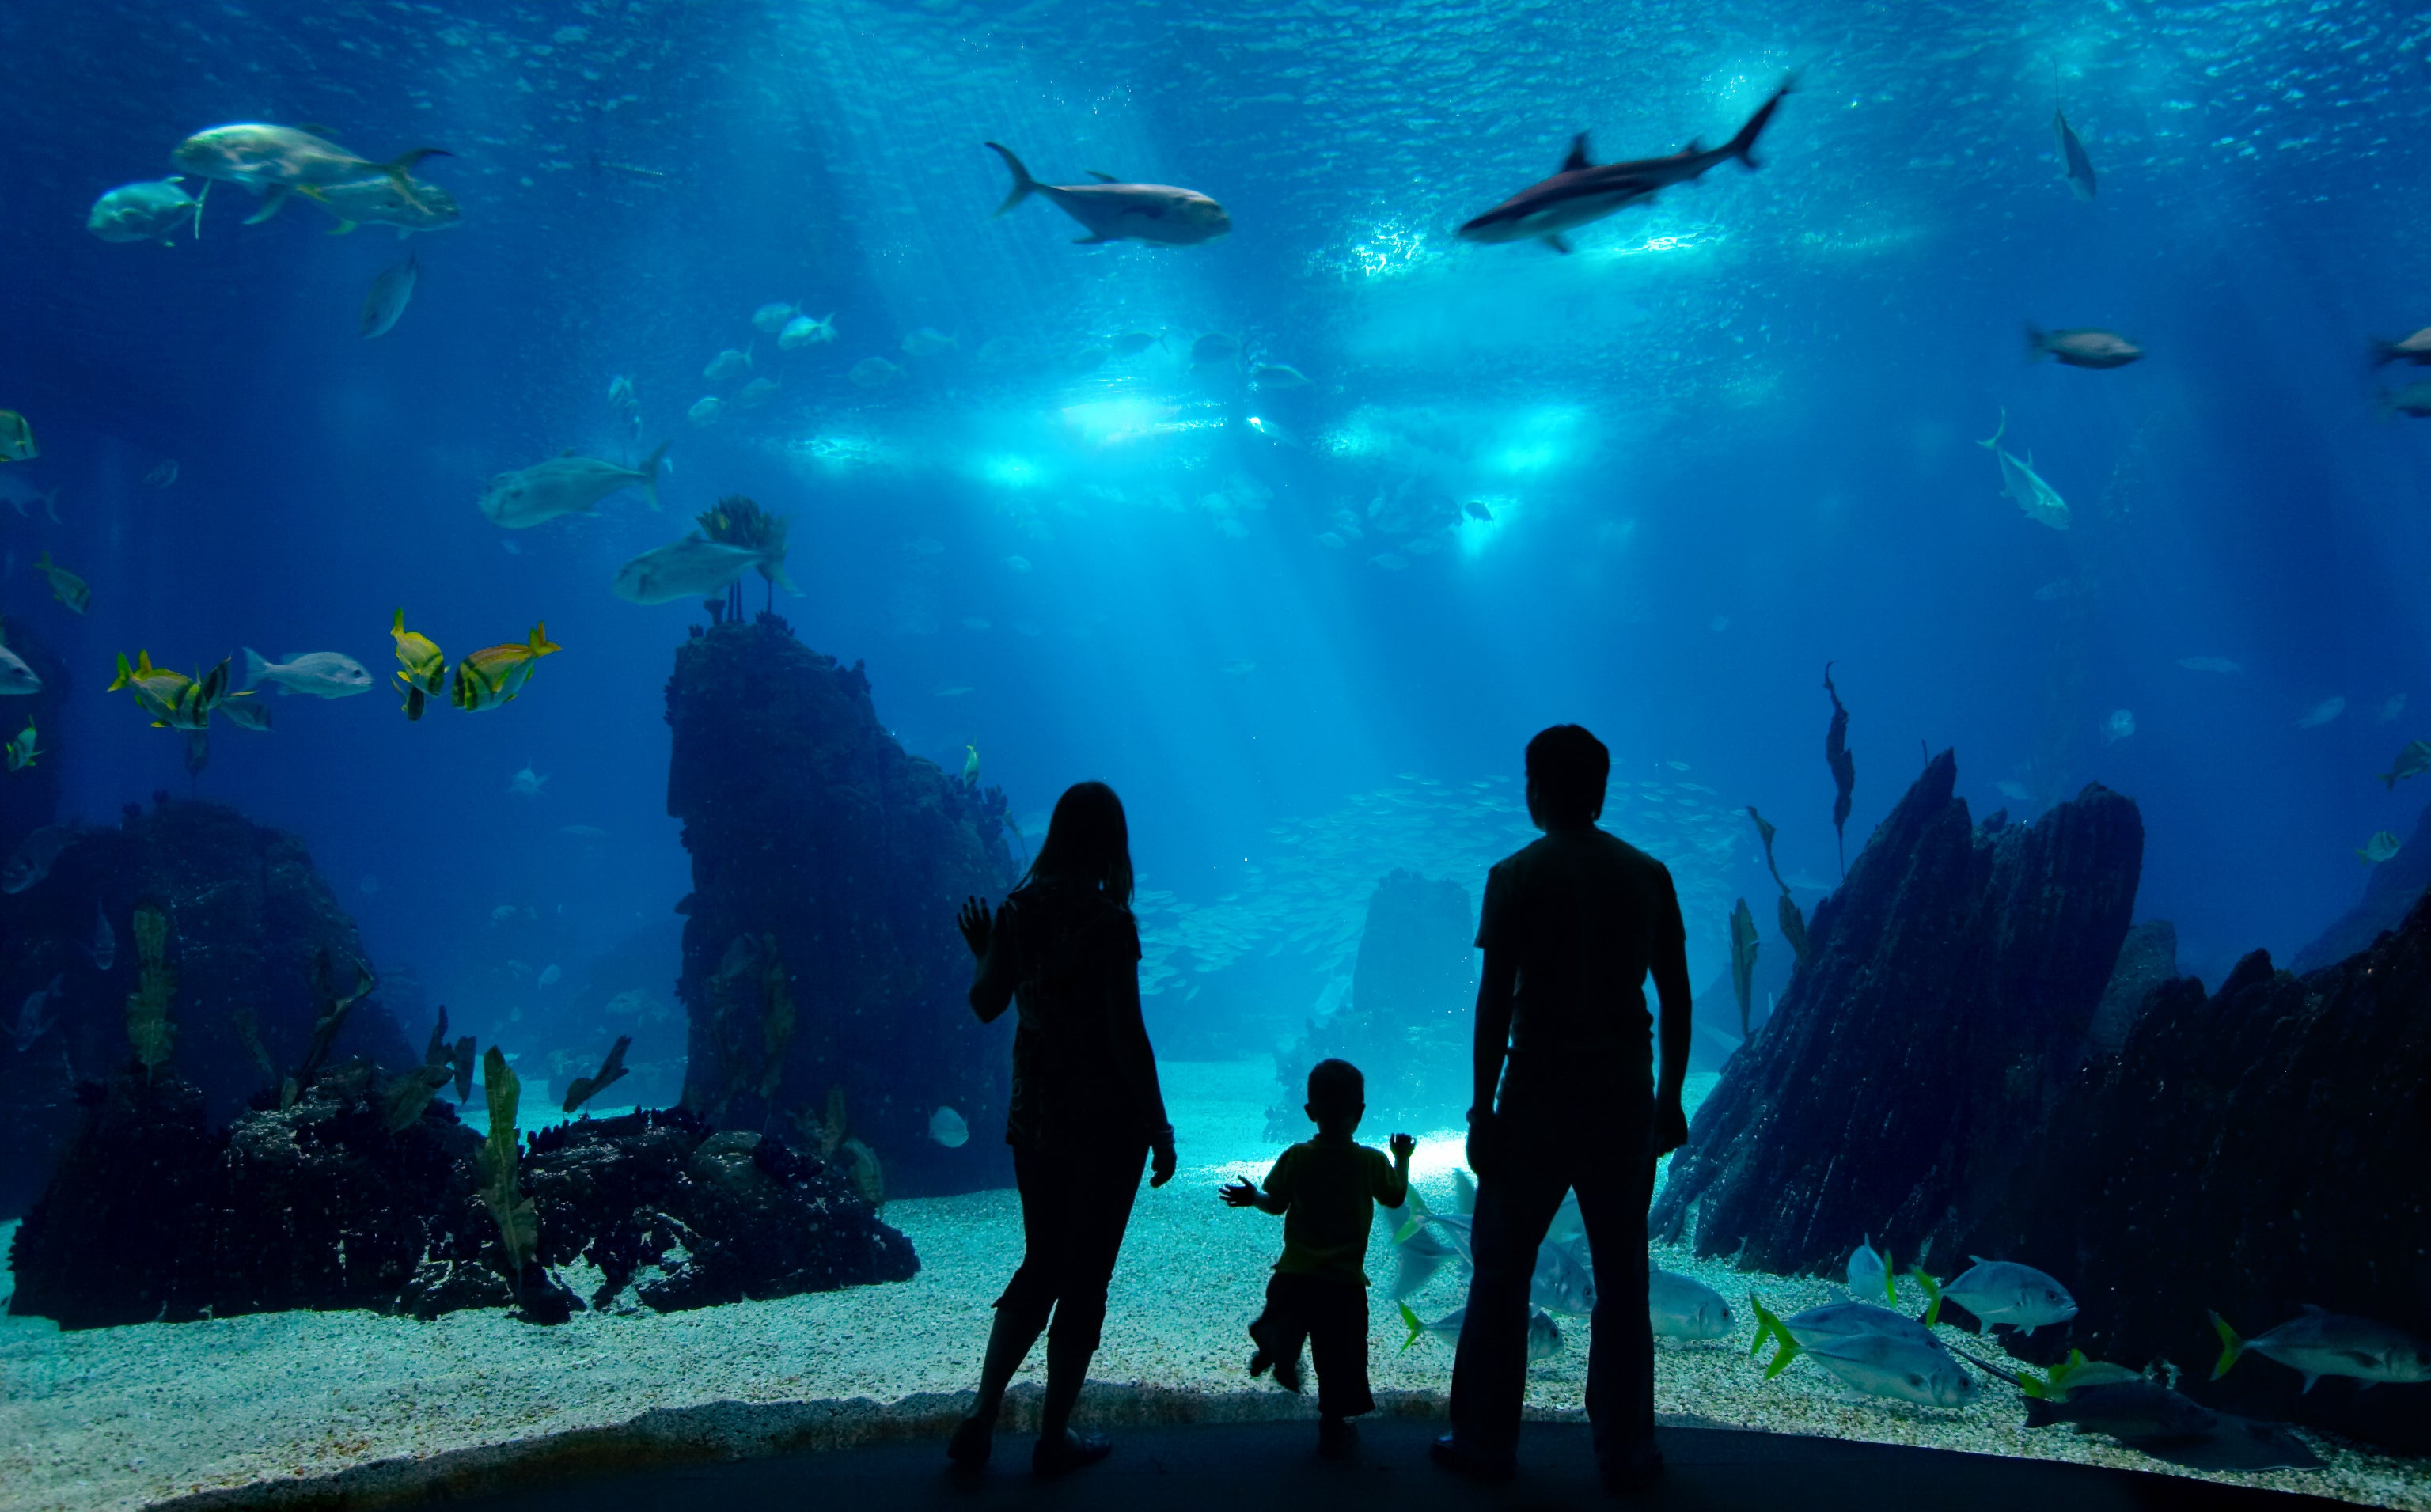 Family of three silhouettes looking through the glass of an aquarium